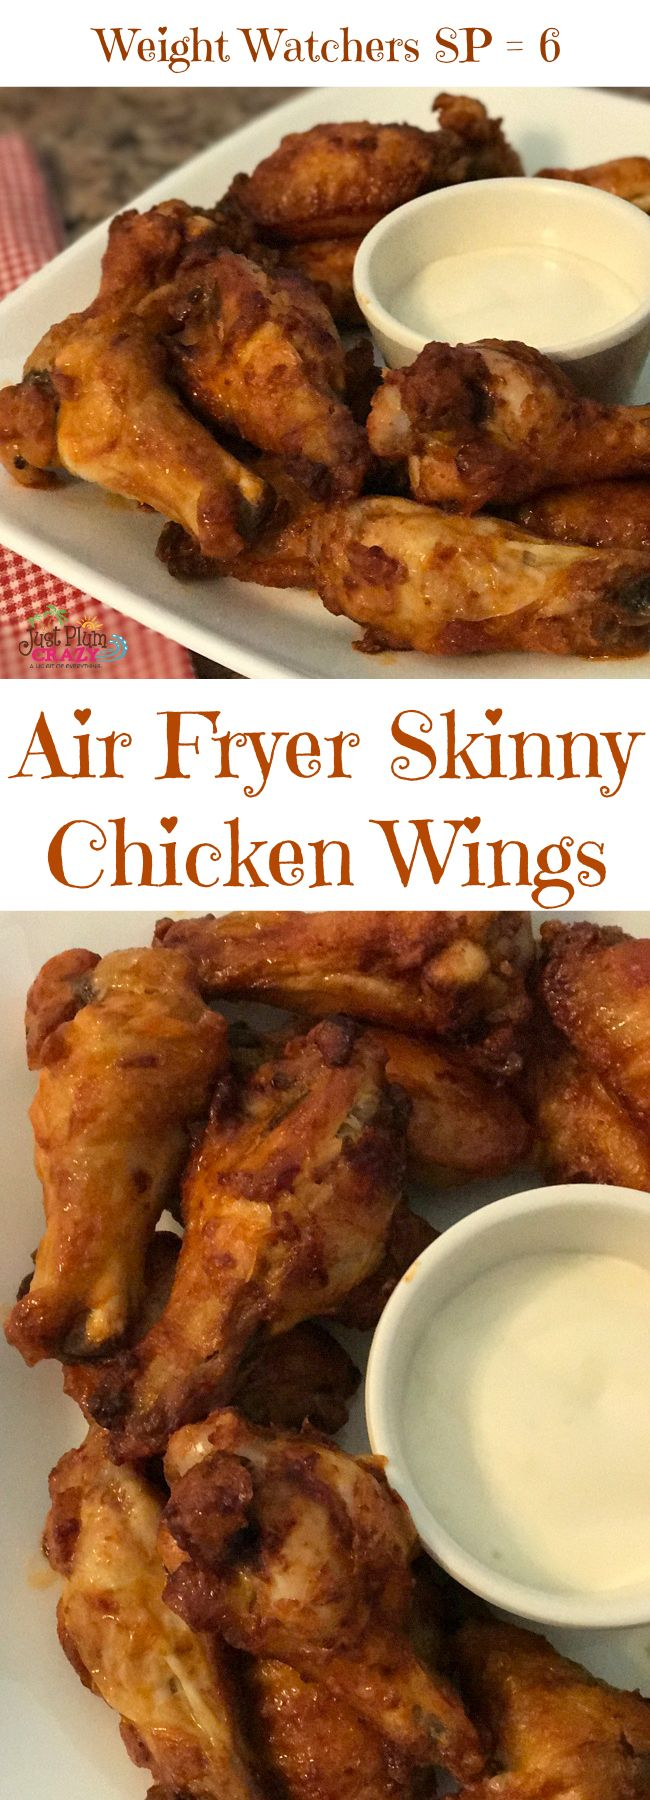 https://plumcrazyaboutcoupons.com/wp-content/uploads/2017/04/Air-Fryer-Skinny-Chicken-Wings-Recipe-WW-SP-6-.jpg